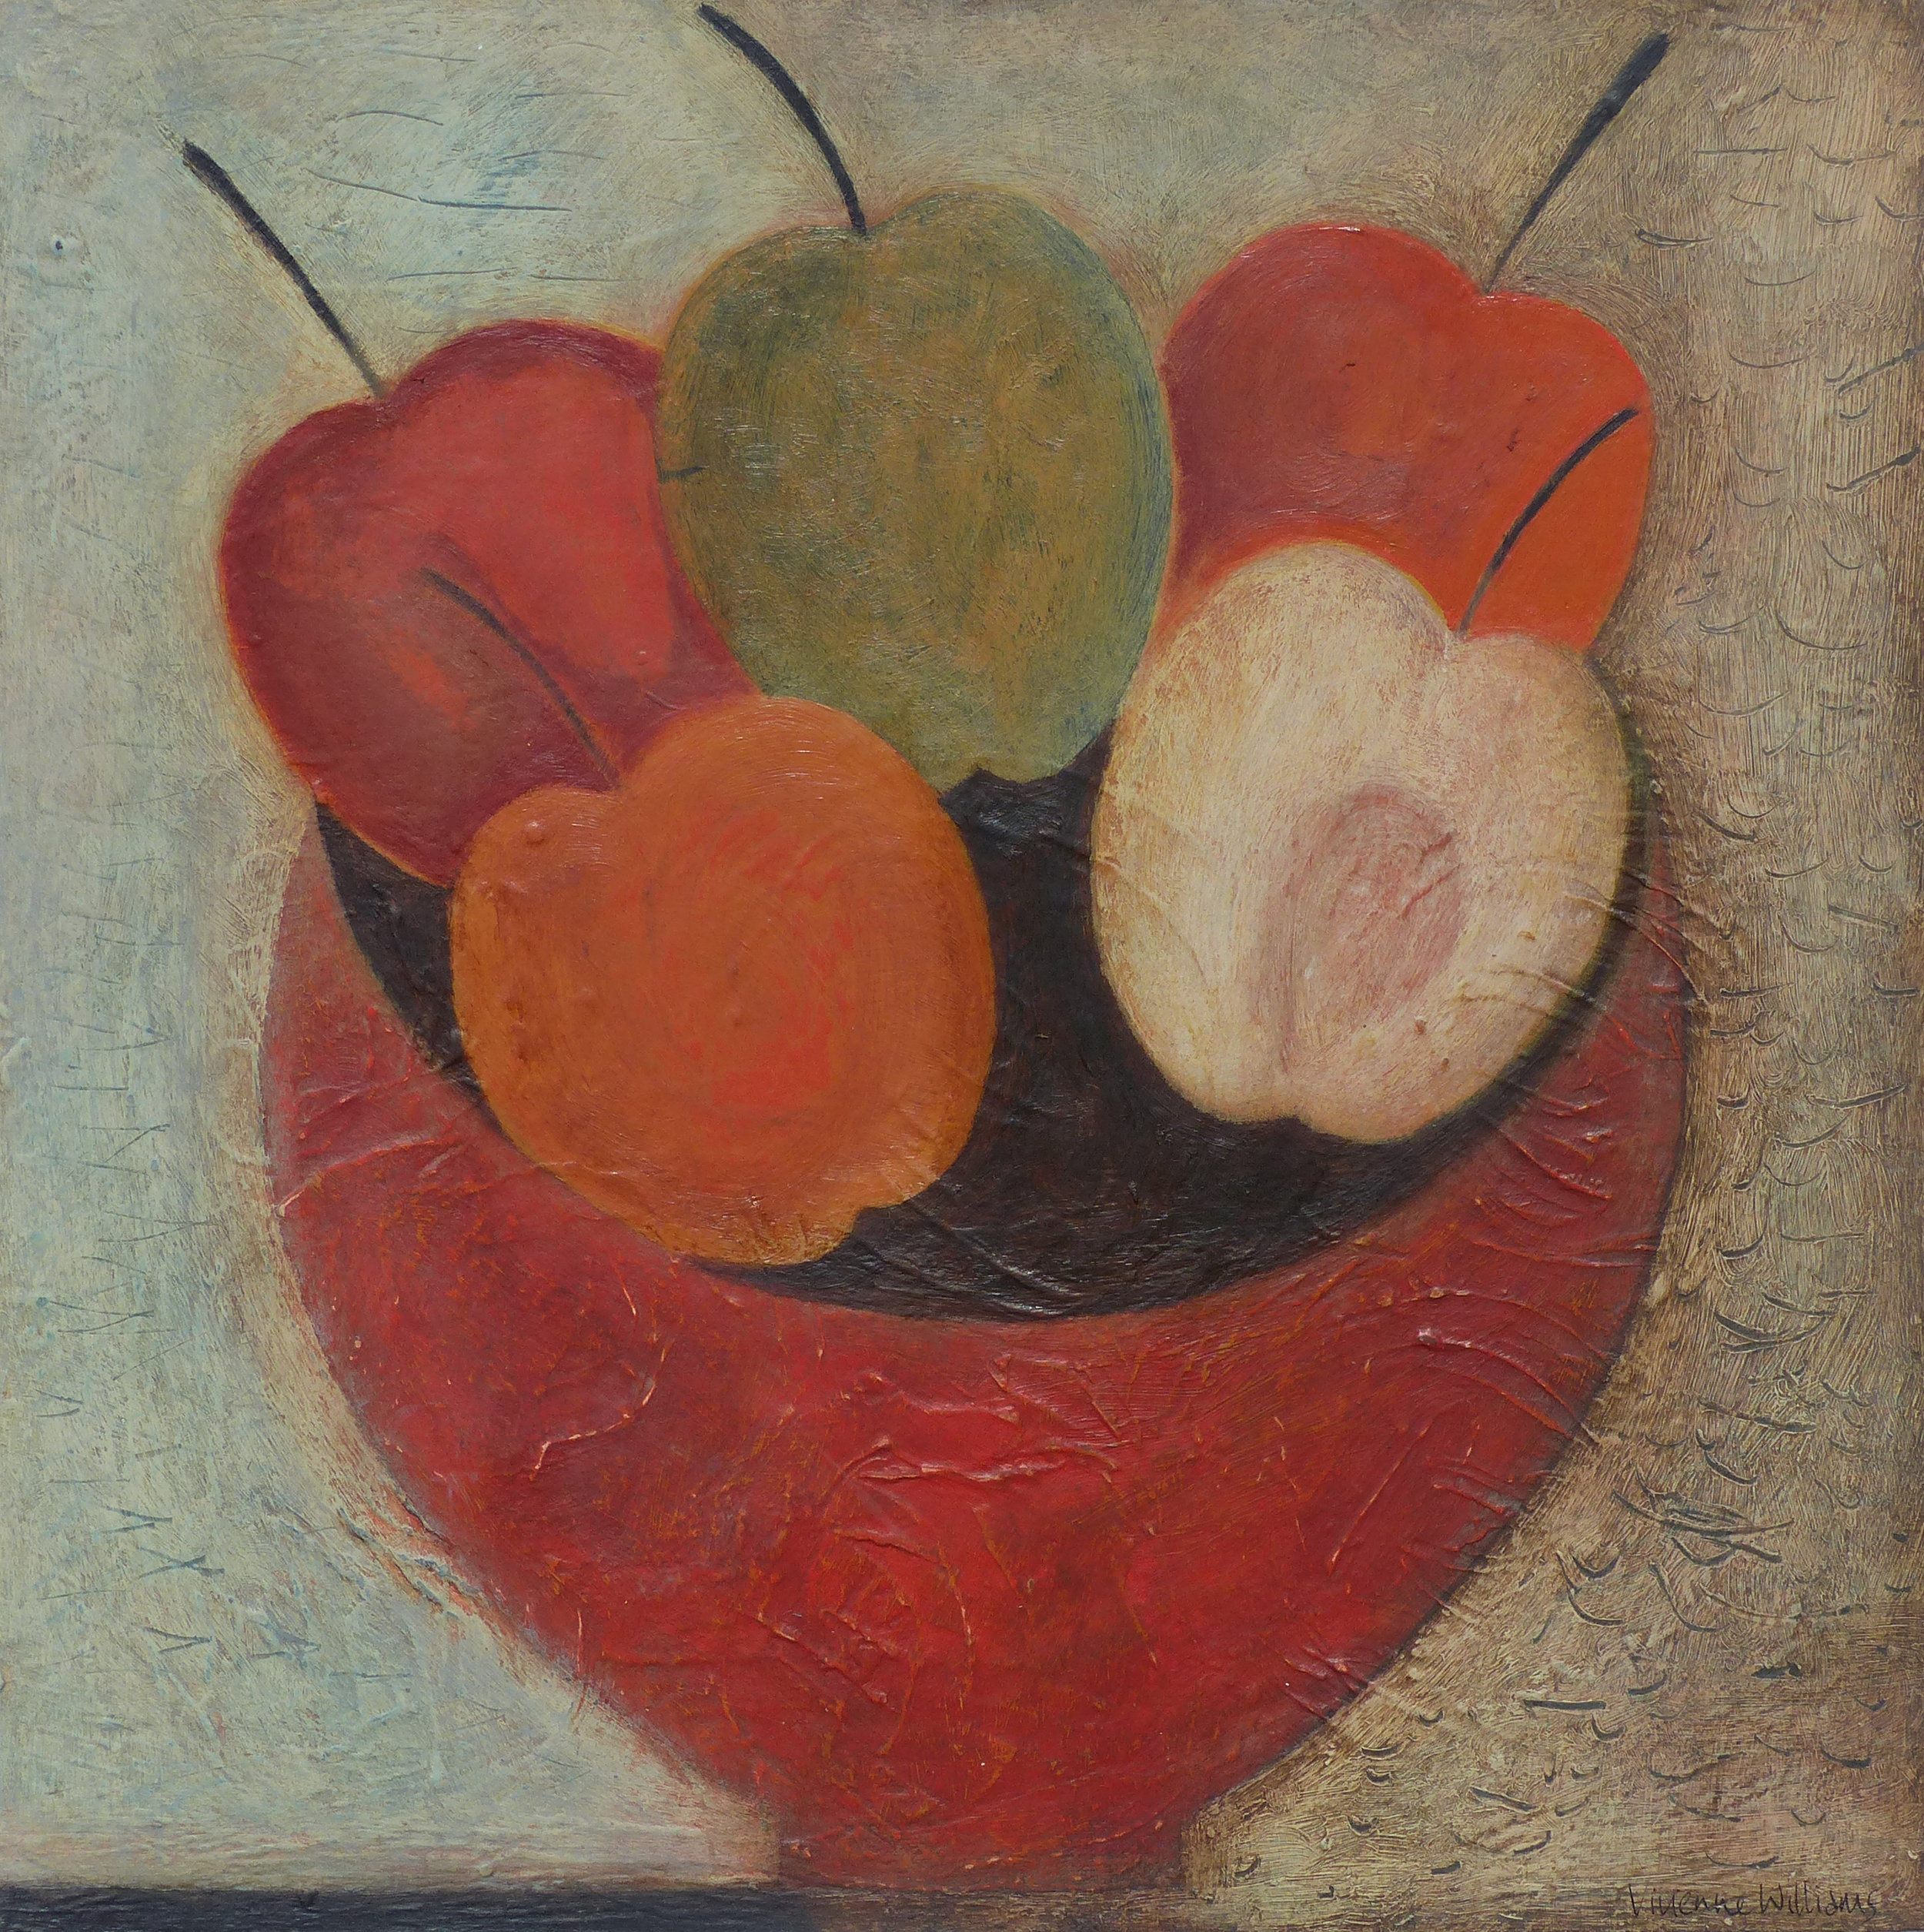 Apples in Red Bowl, 30.5cm x 30.5cm, 2016